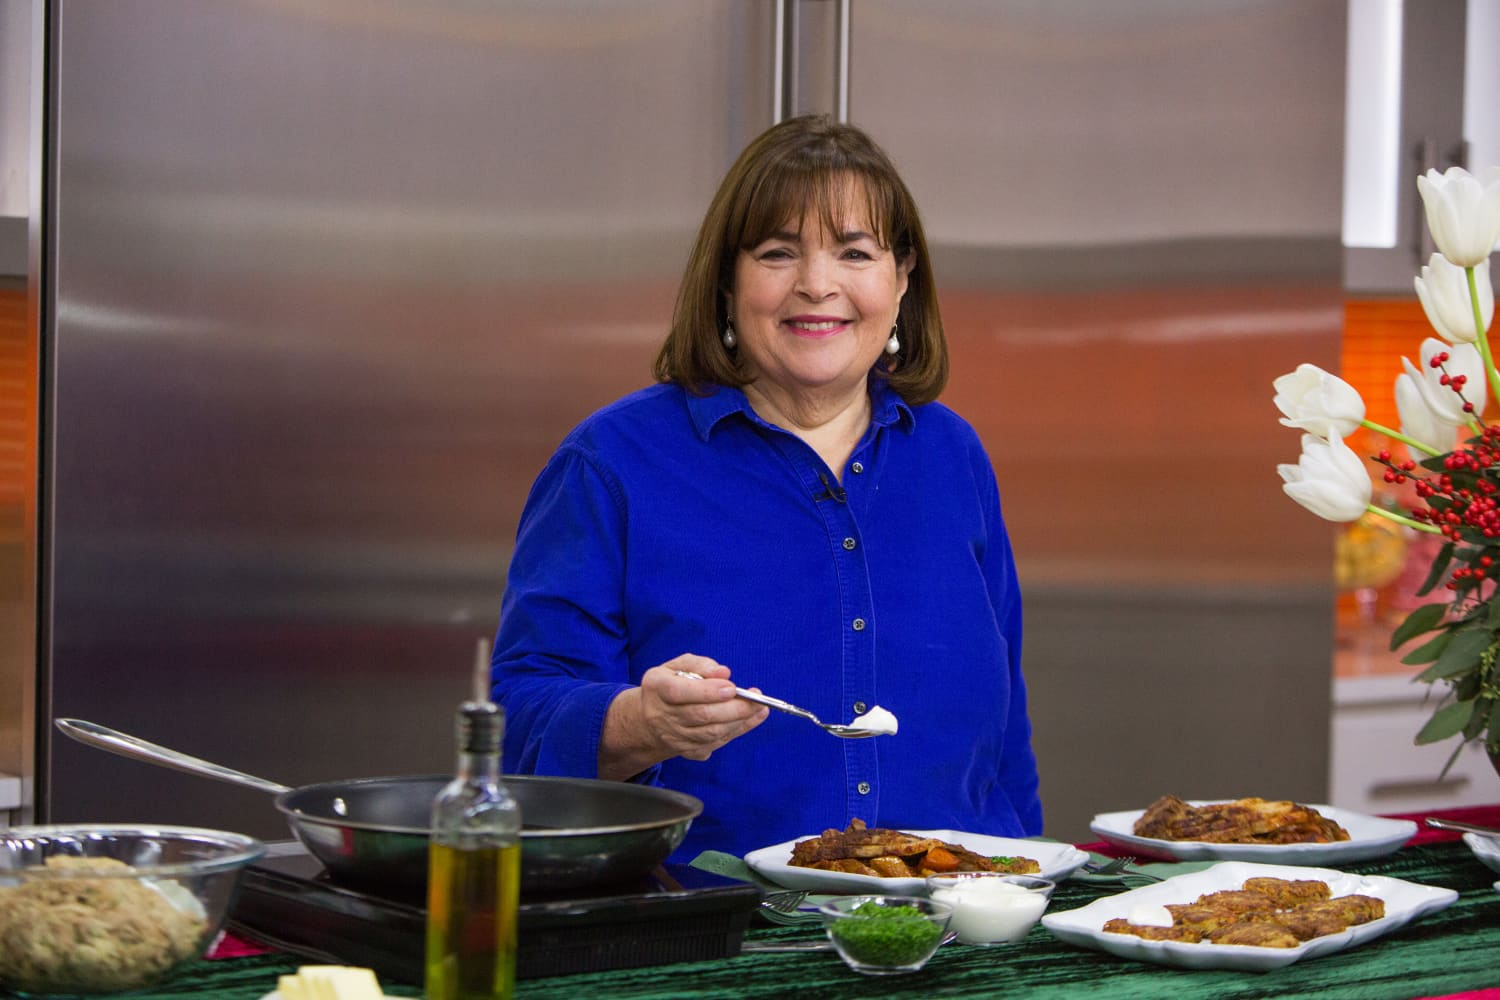 Ina Garten Shares Her 9 Favorite Thanksgiving Sides